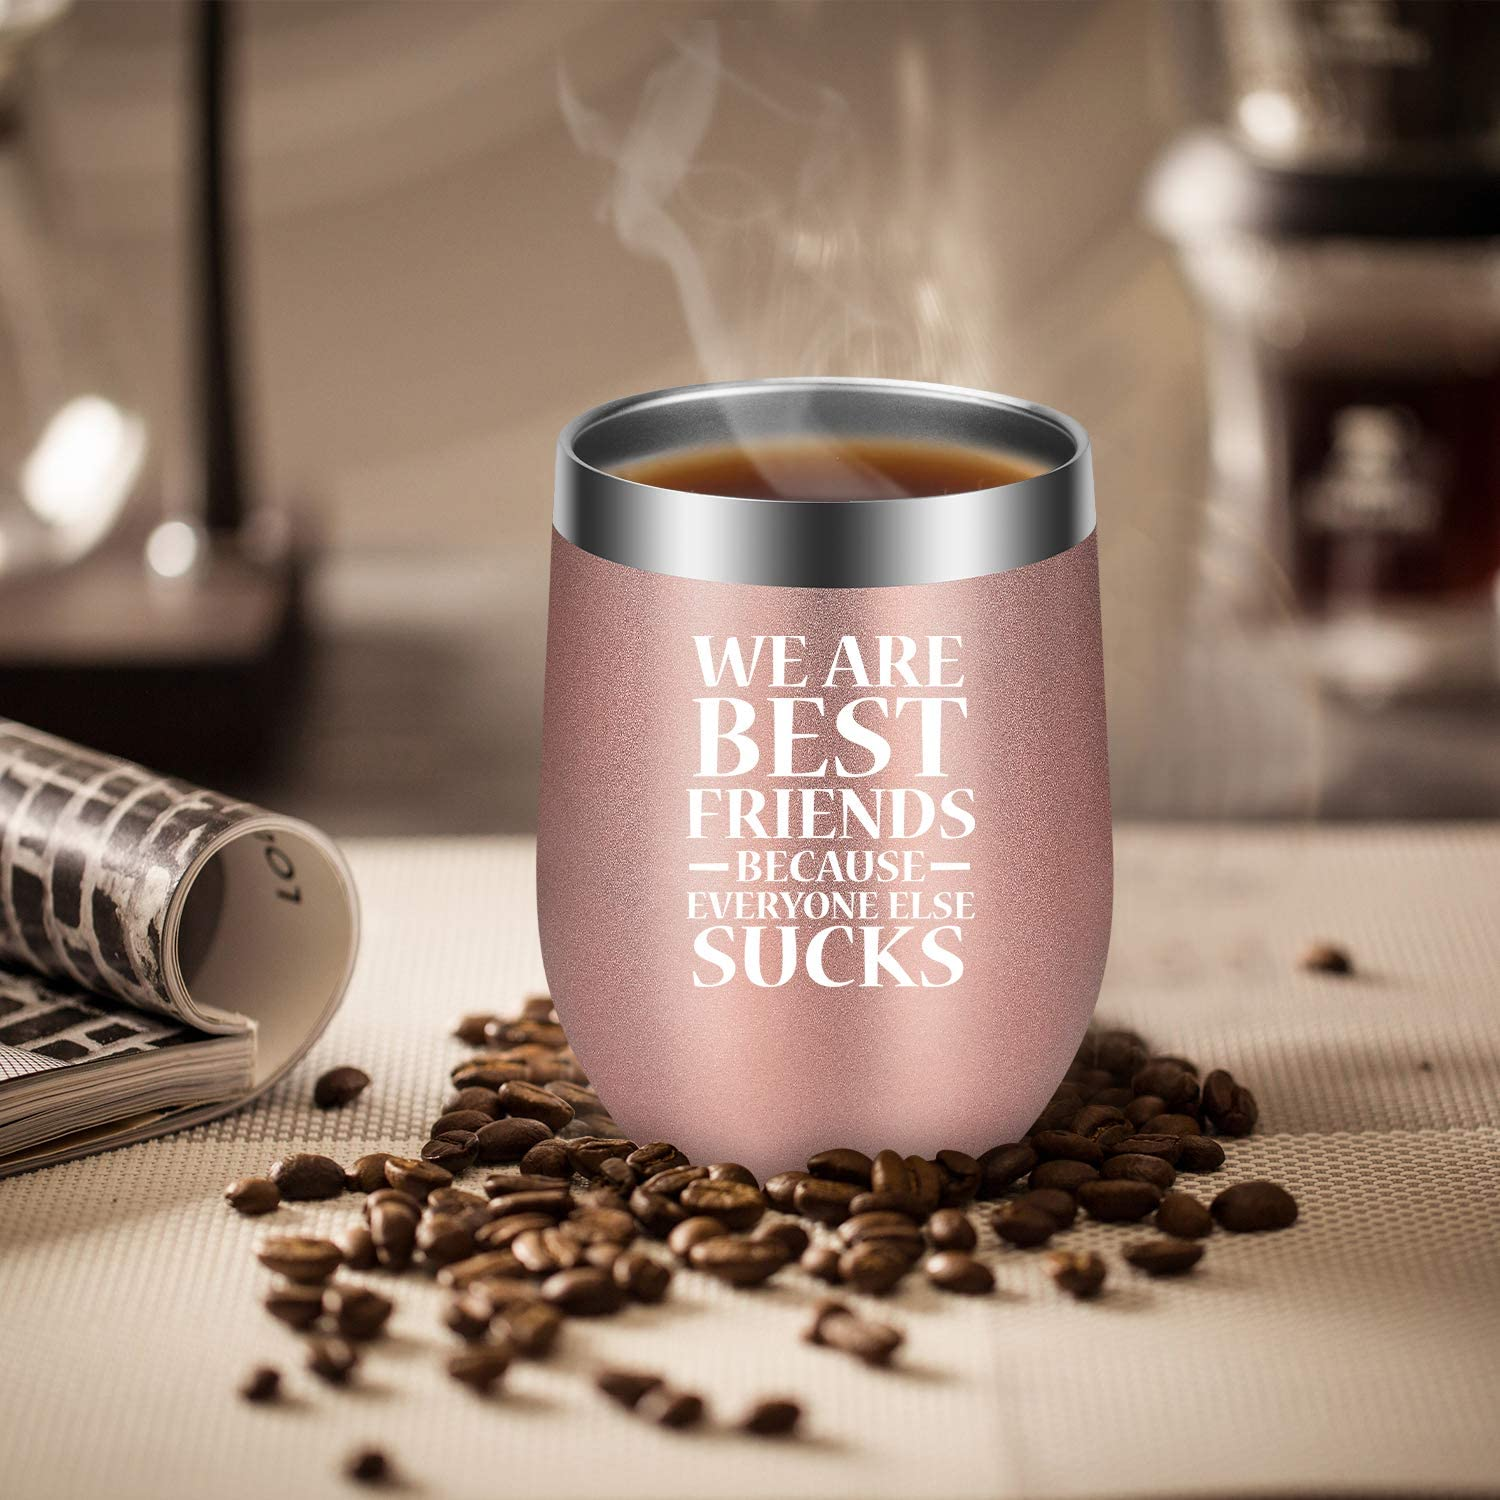 LEADO Wine Tumbler Best Friend Friendship Gifts for Women Funny Birthday Girlfriends We are Best Friends because Everyone Else Sucks Soul Sister Christmas Gifts for Bestie BFF Best Bitches